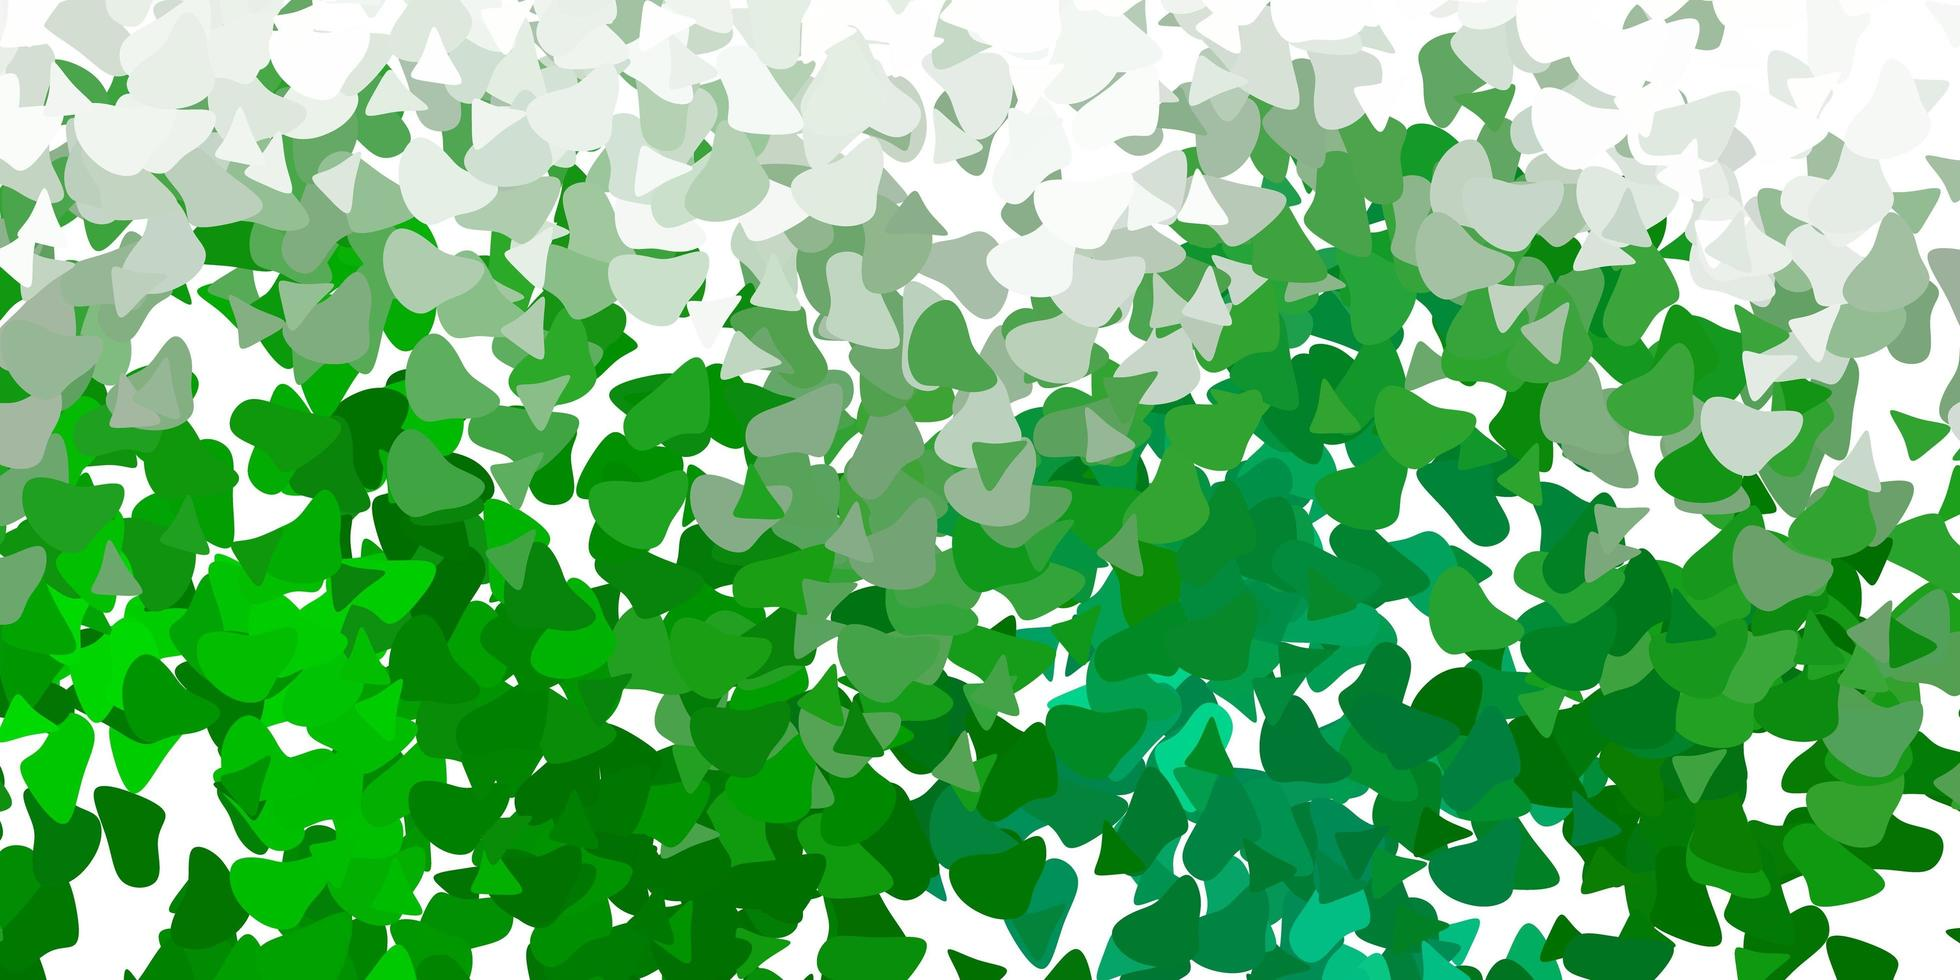 Light green vector backdrop with chaotic shapes